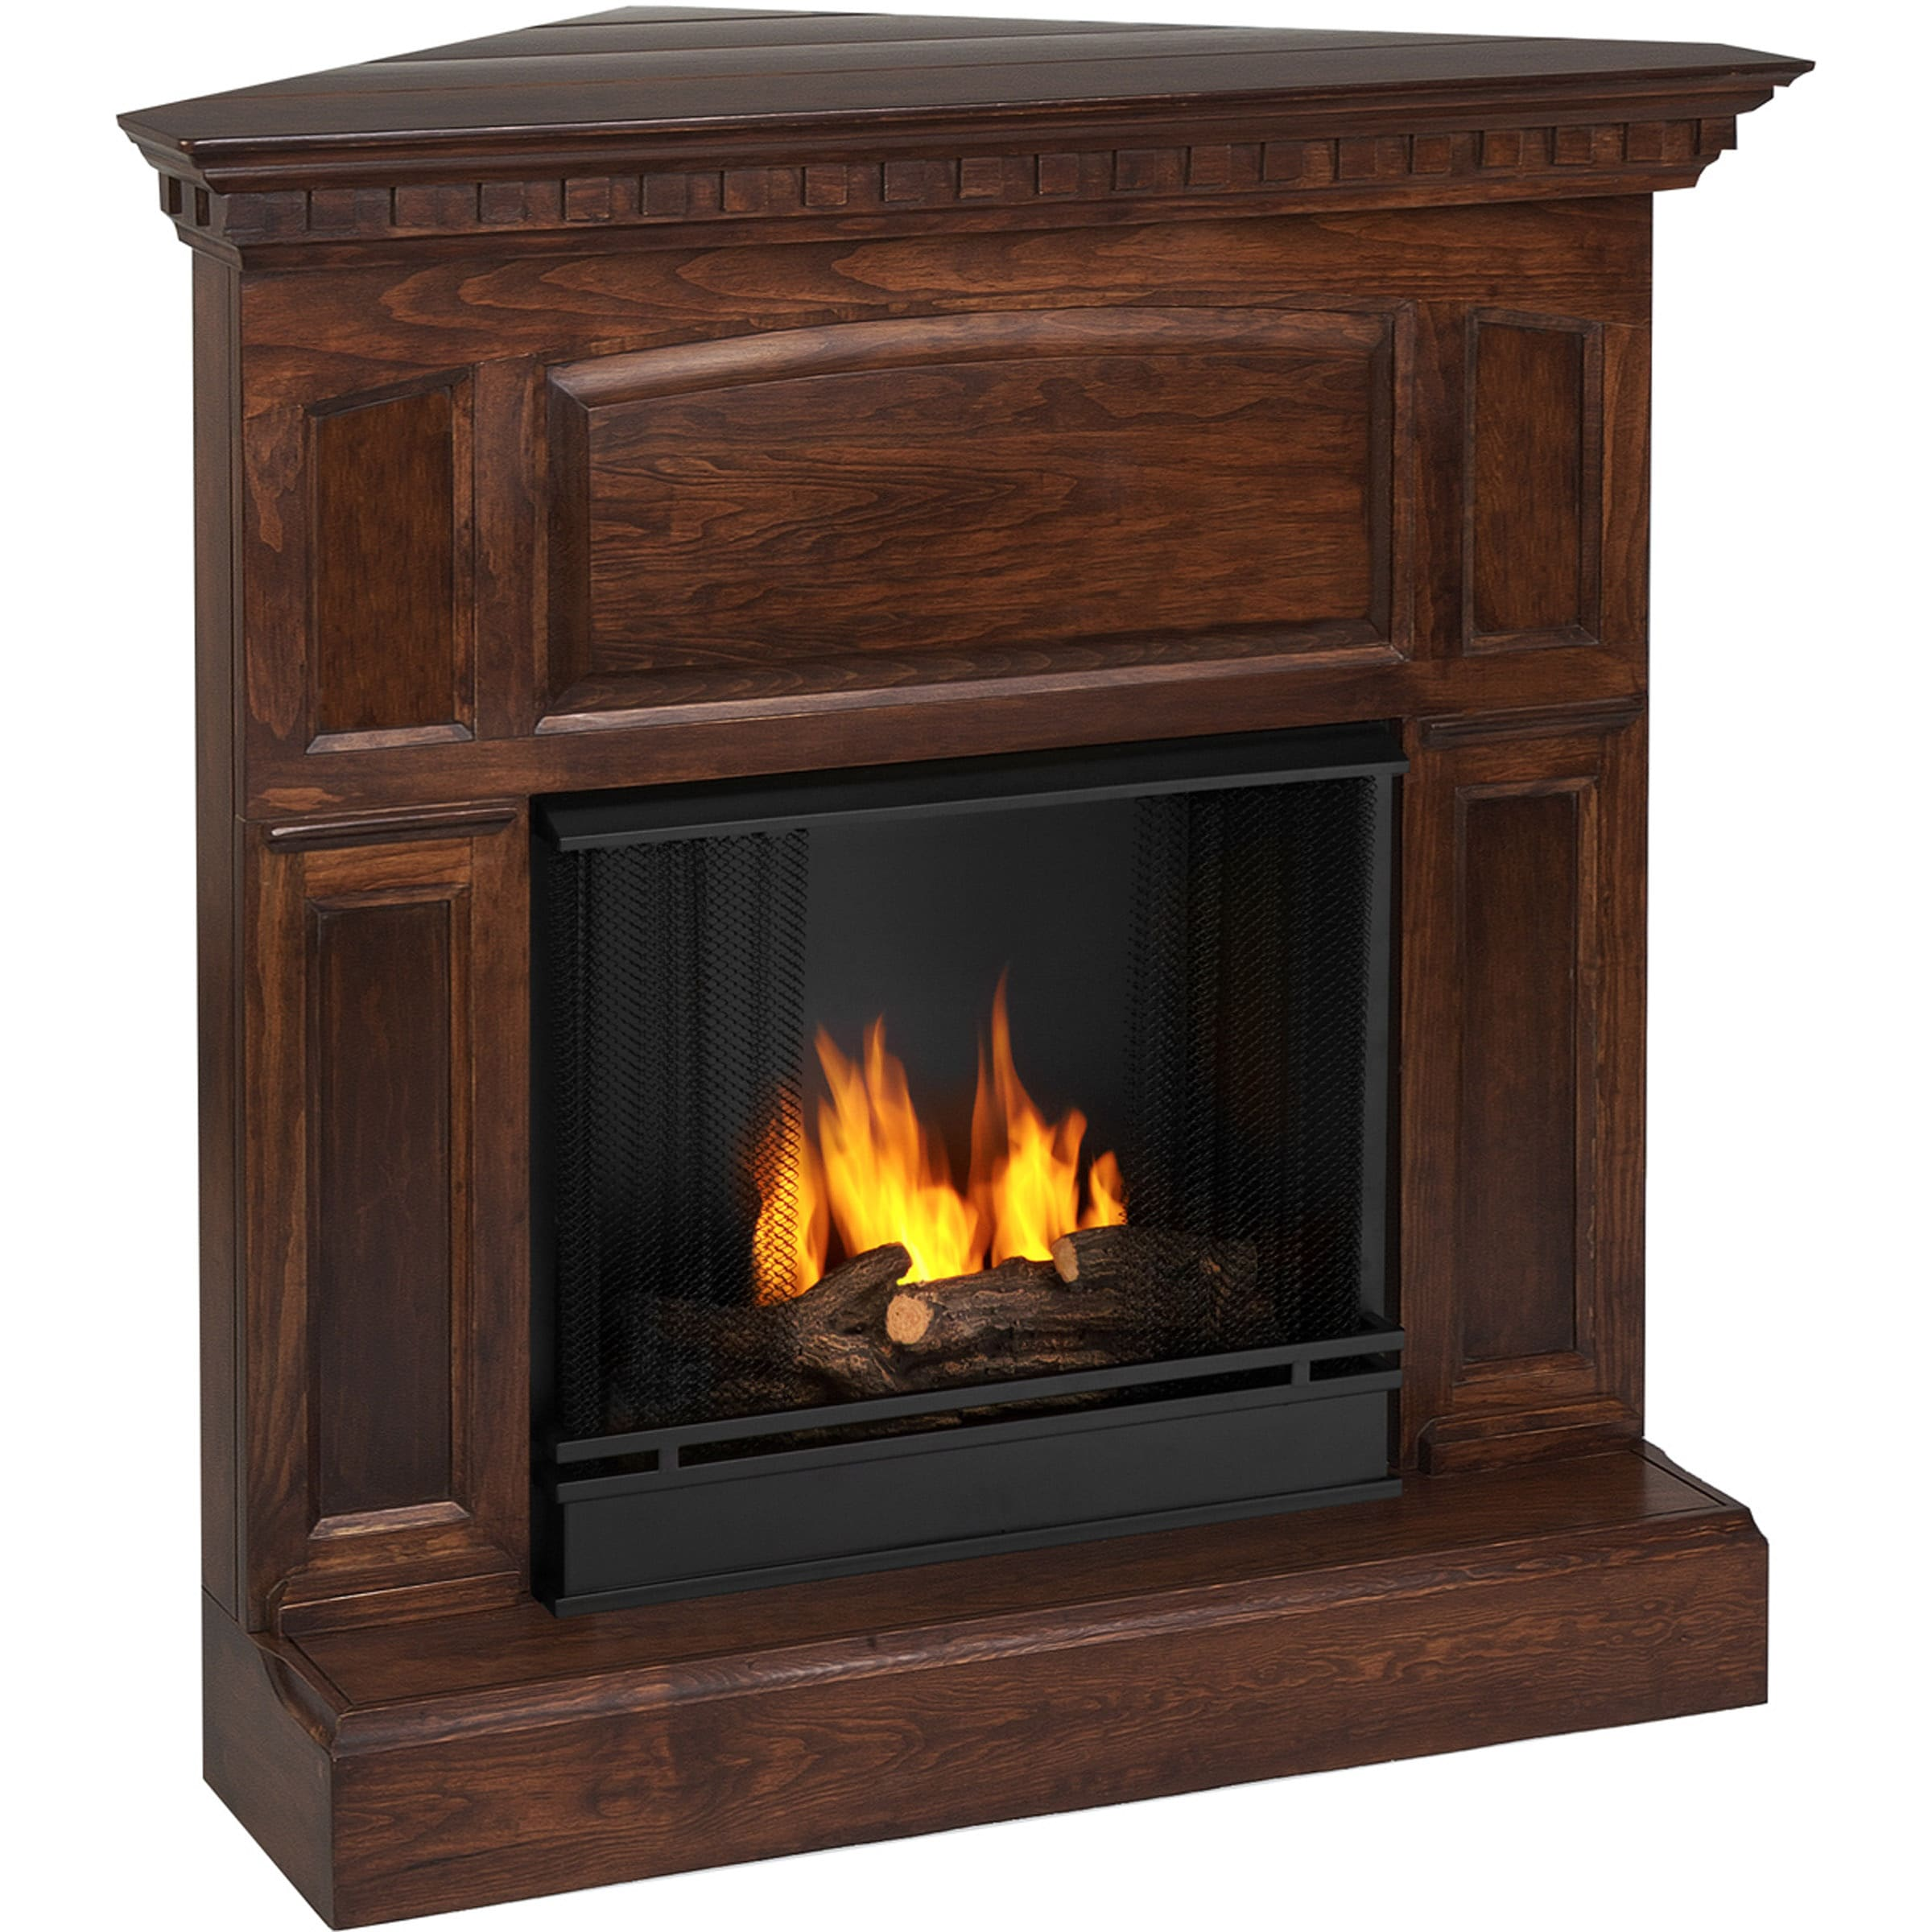 shop real flame heritage corner gel fuel mahogany fireplace free rh overstock com Fireplace Gel Fuel Cans White Gel Fuel Fireplace